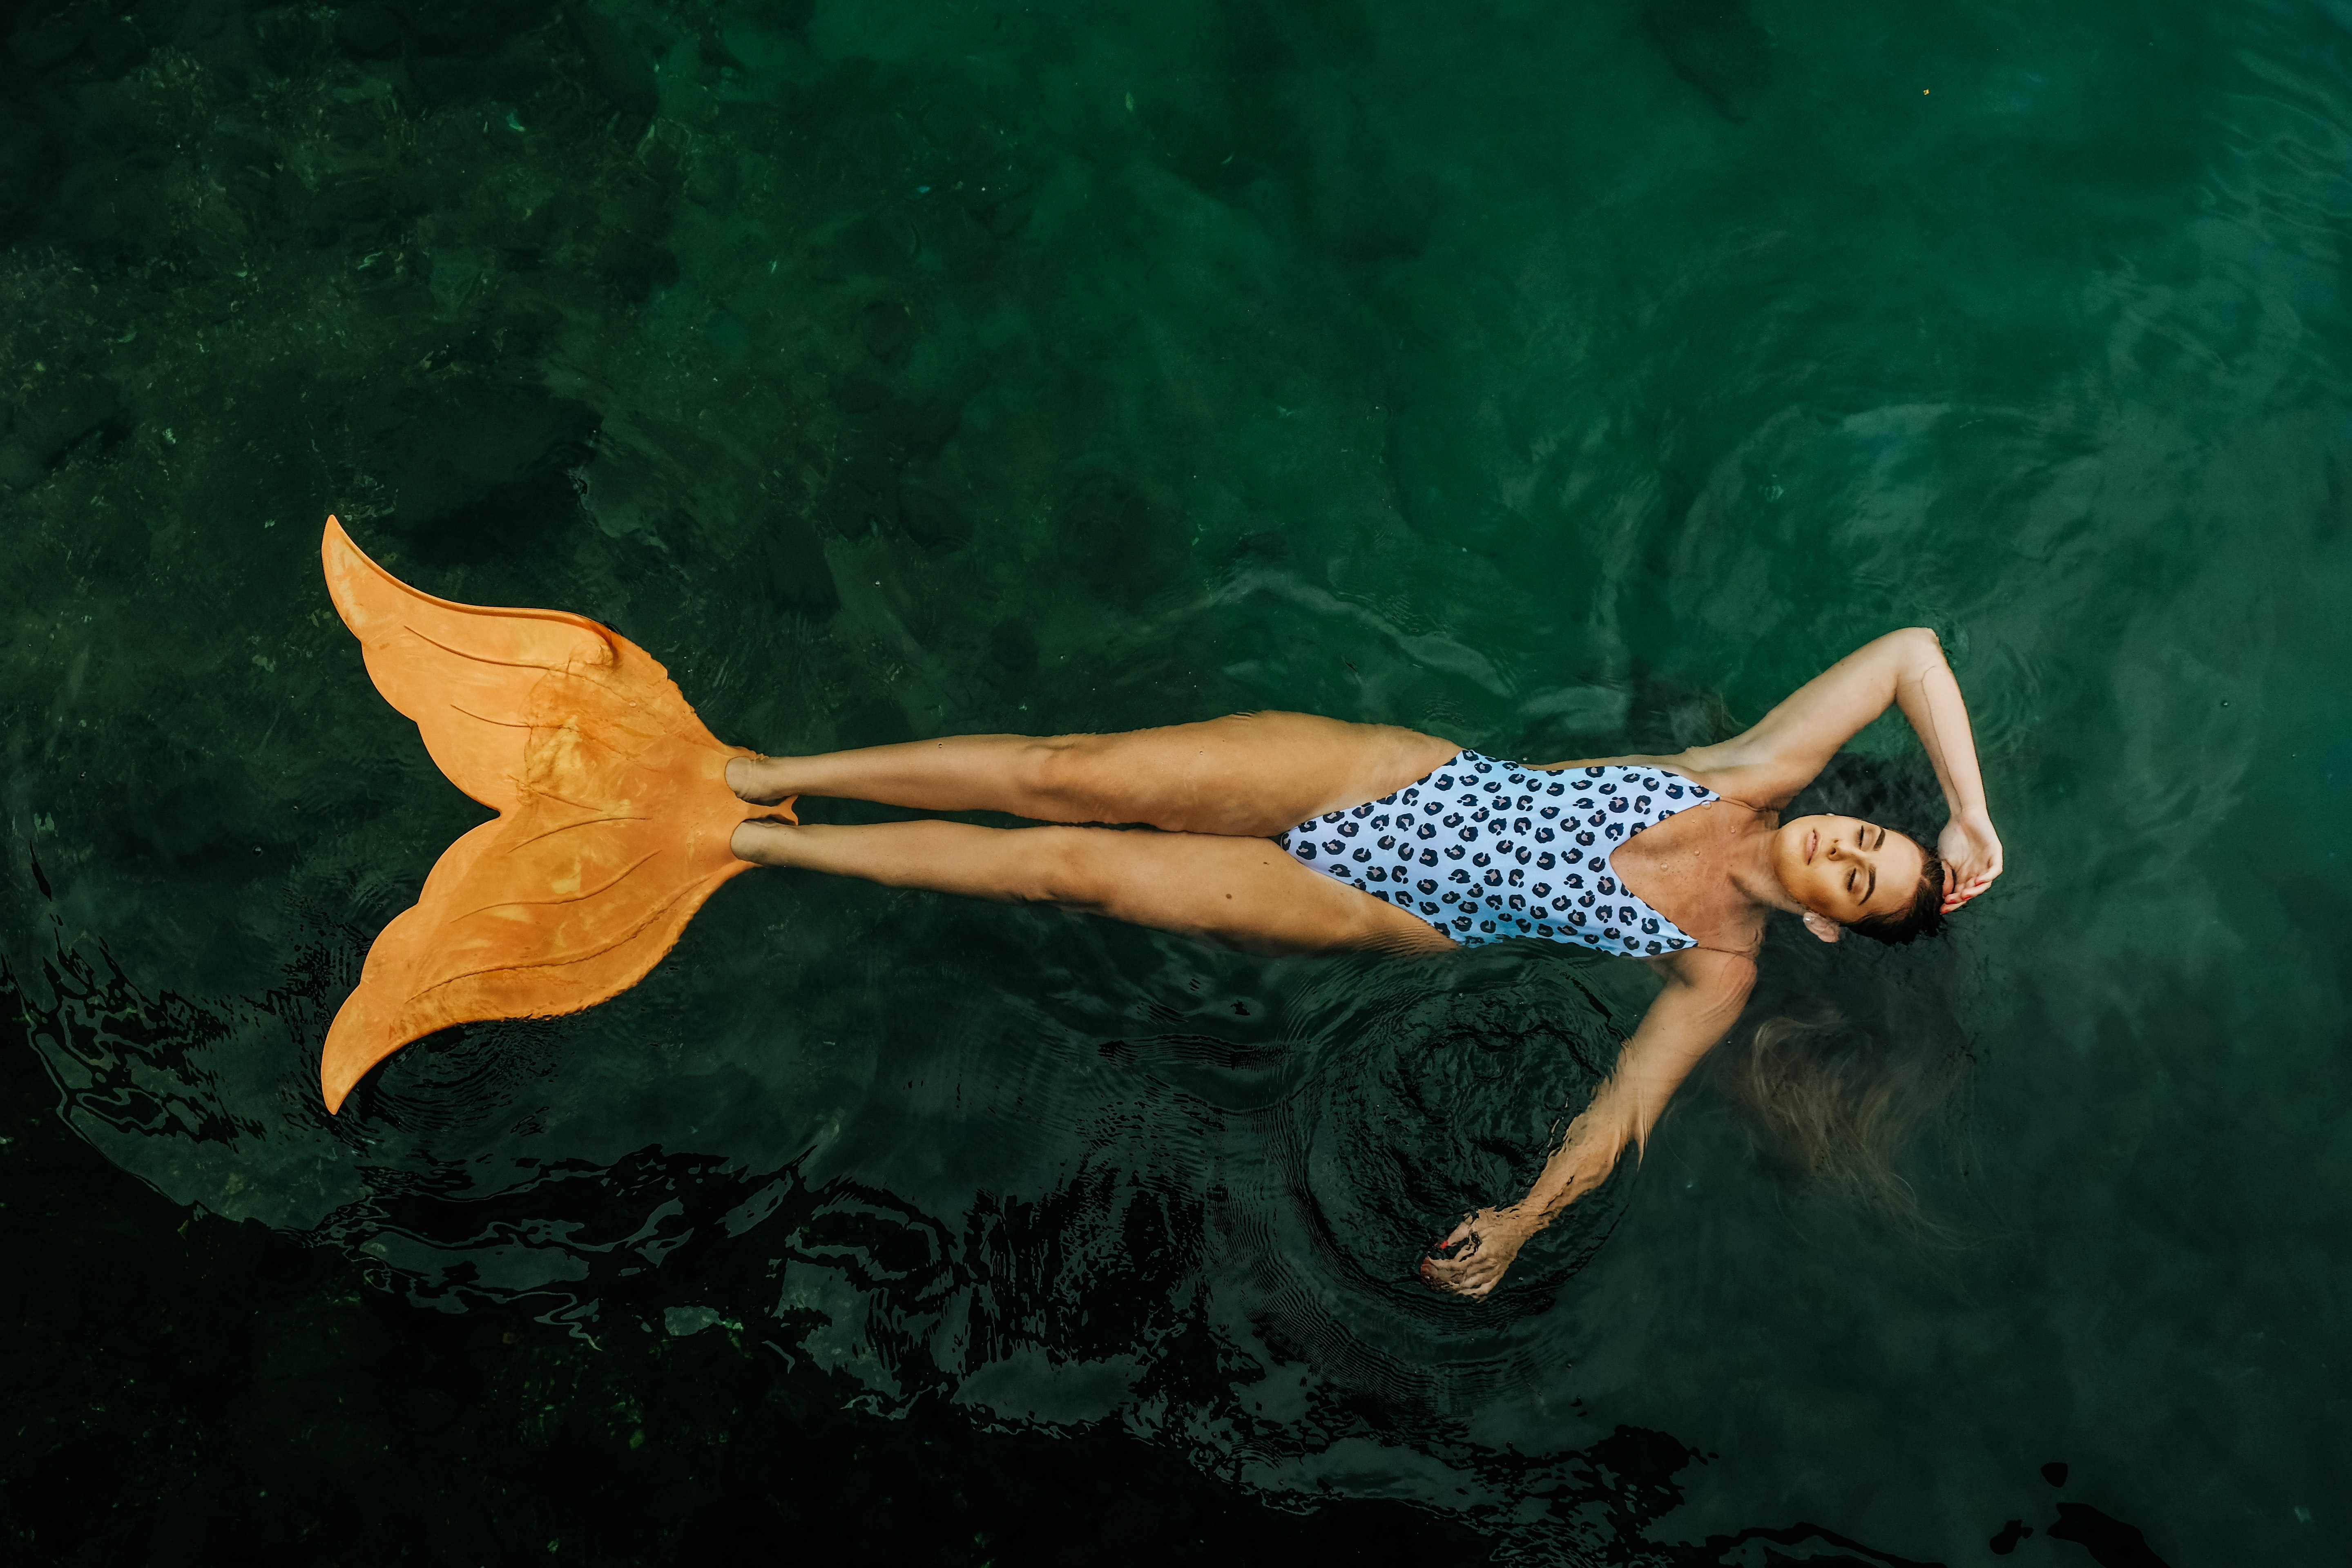 photo of woman floating on body of water with mermaid tail flippers